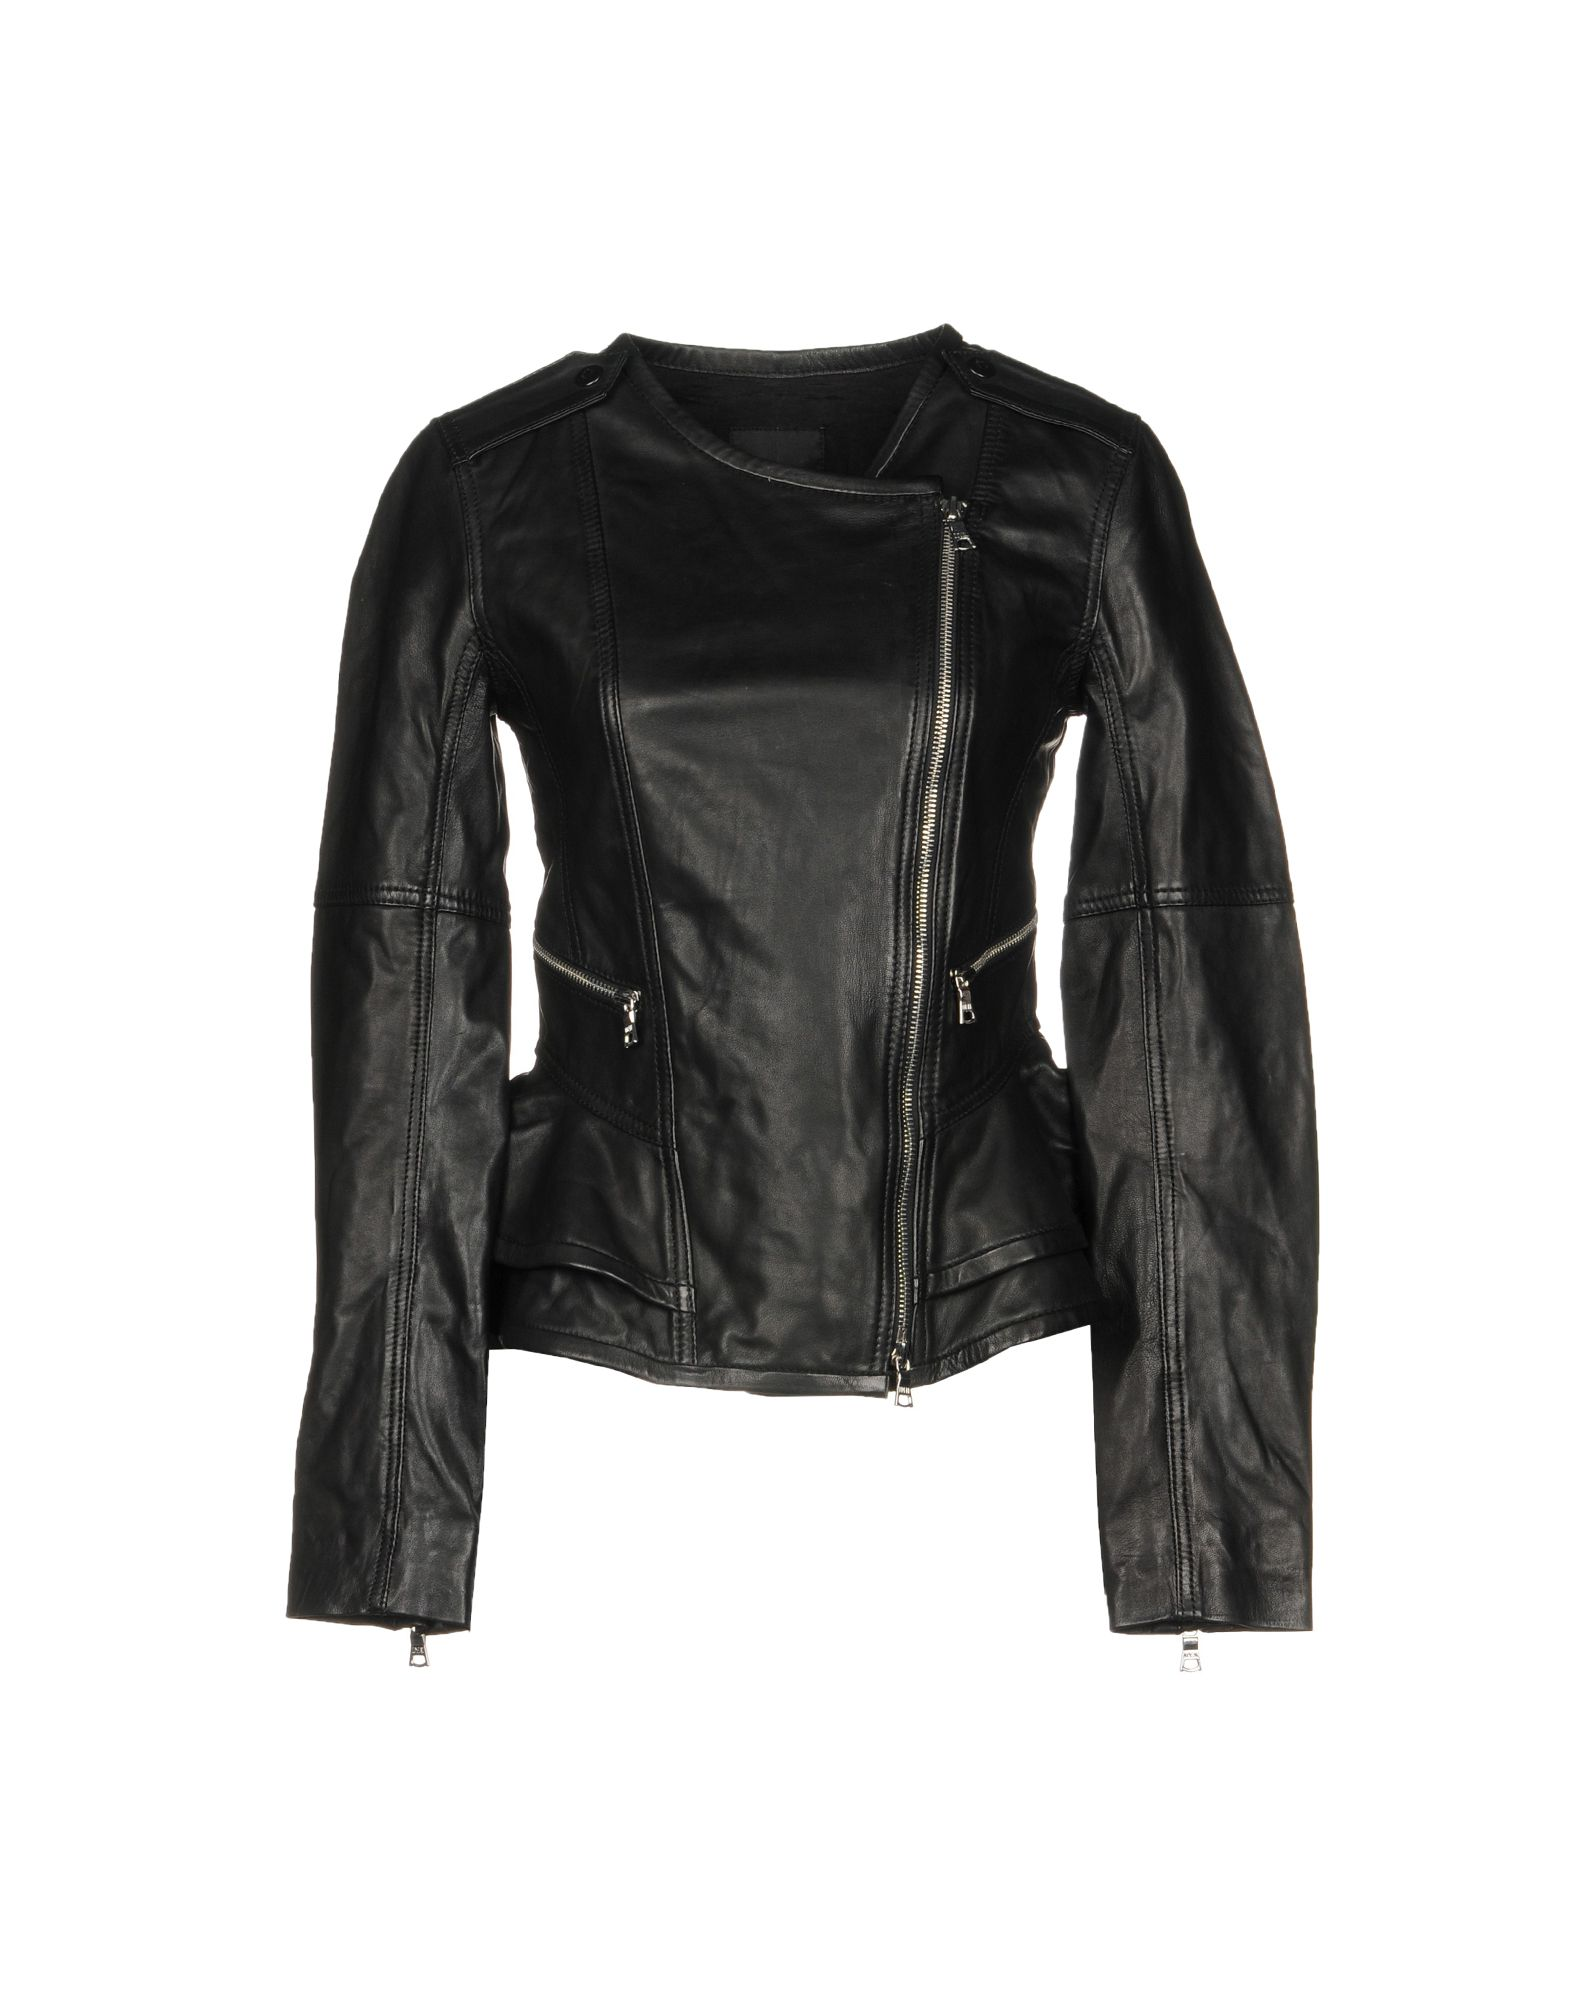 MARISSA WEBB Jackets in Black